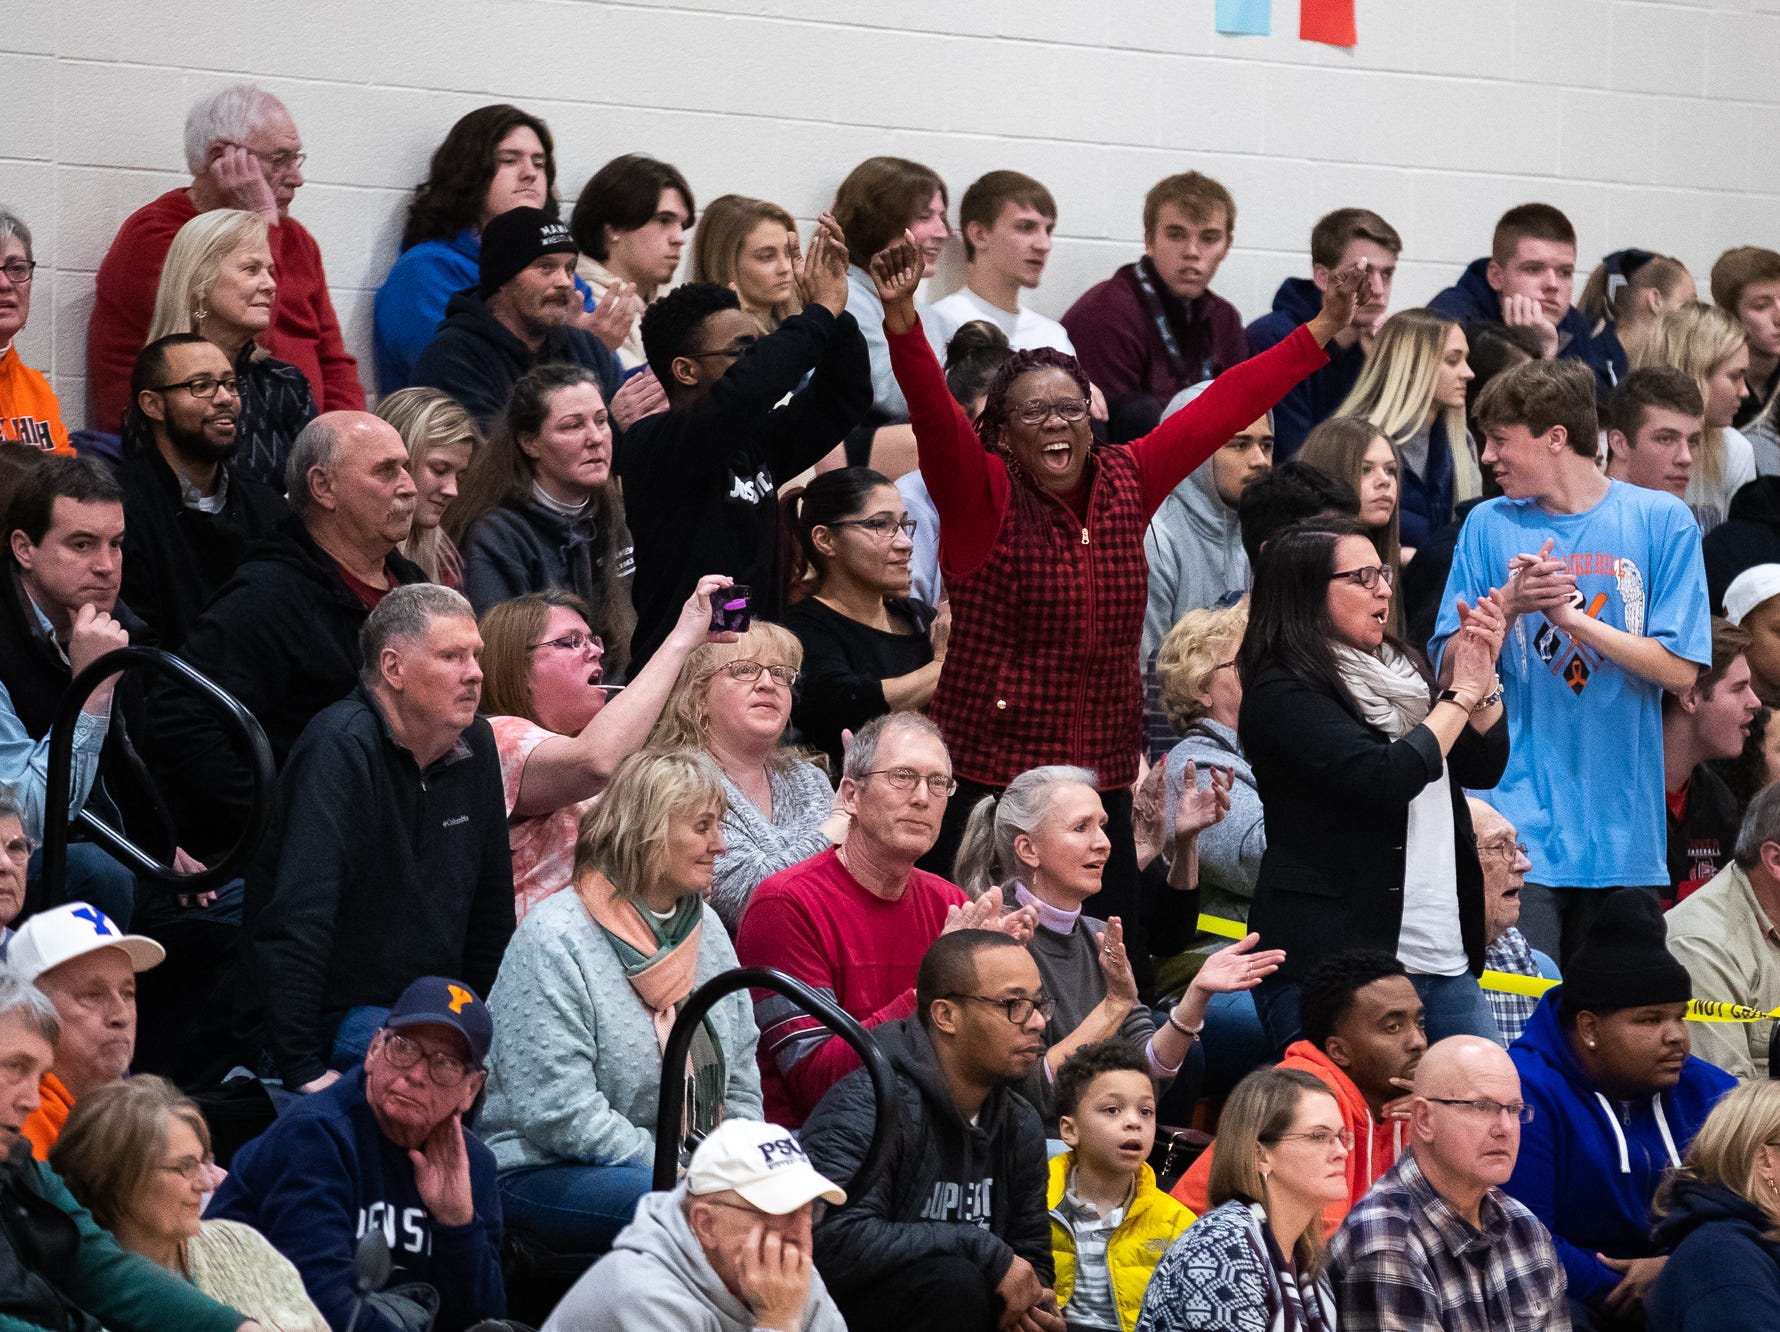 The Dover fan section cheers during the first half of a YAIAA quarterfinal between York High and Dover, Saturday, Feb. 9, 2019, at Central York High School. West York led Dover 48-35 at the half.